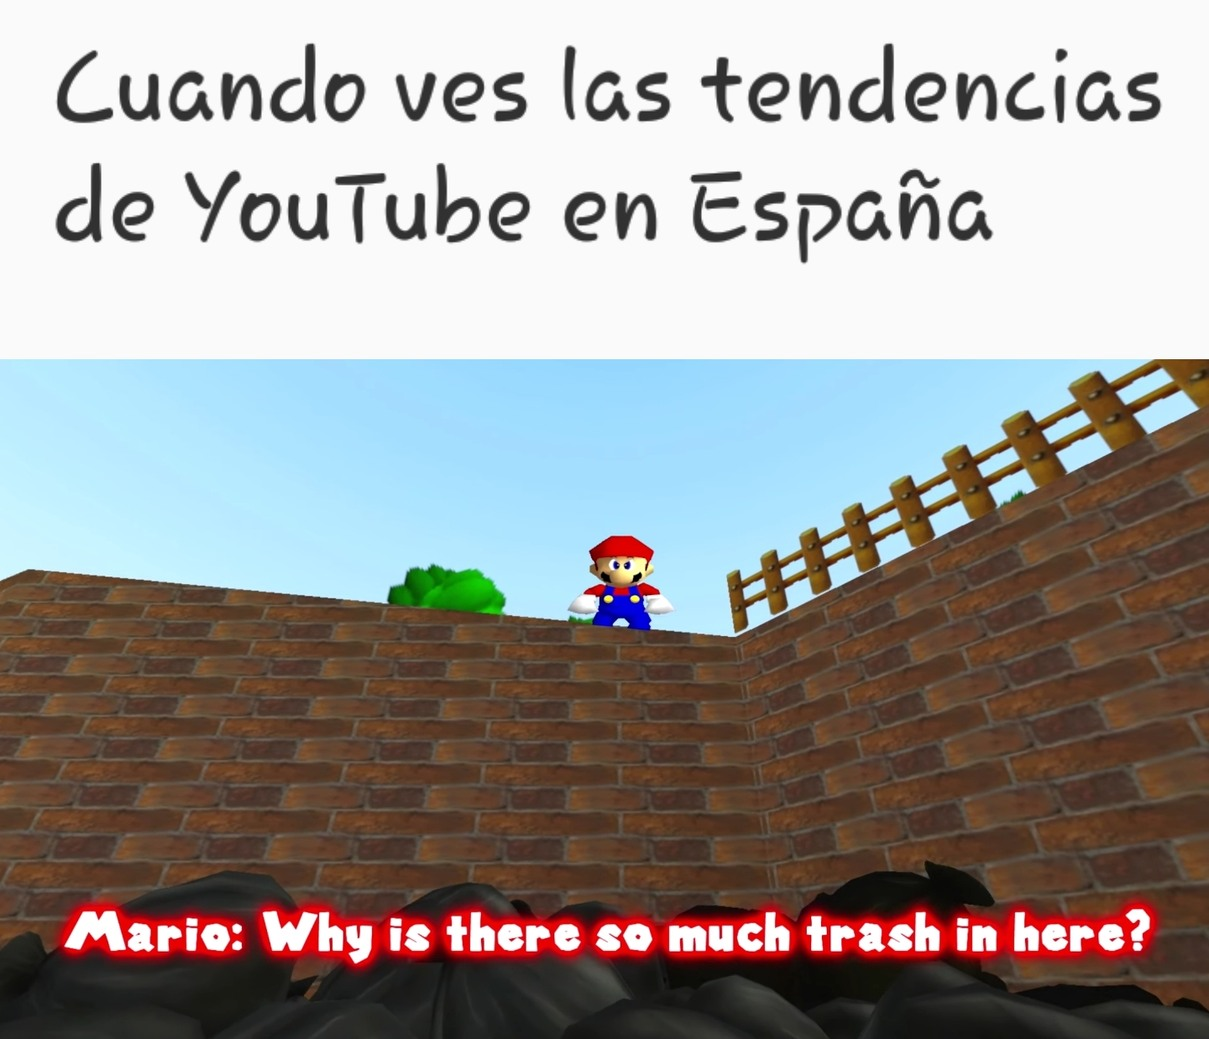 Las pinches tendencias de YouTube - meme